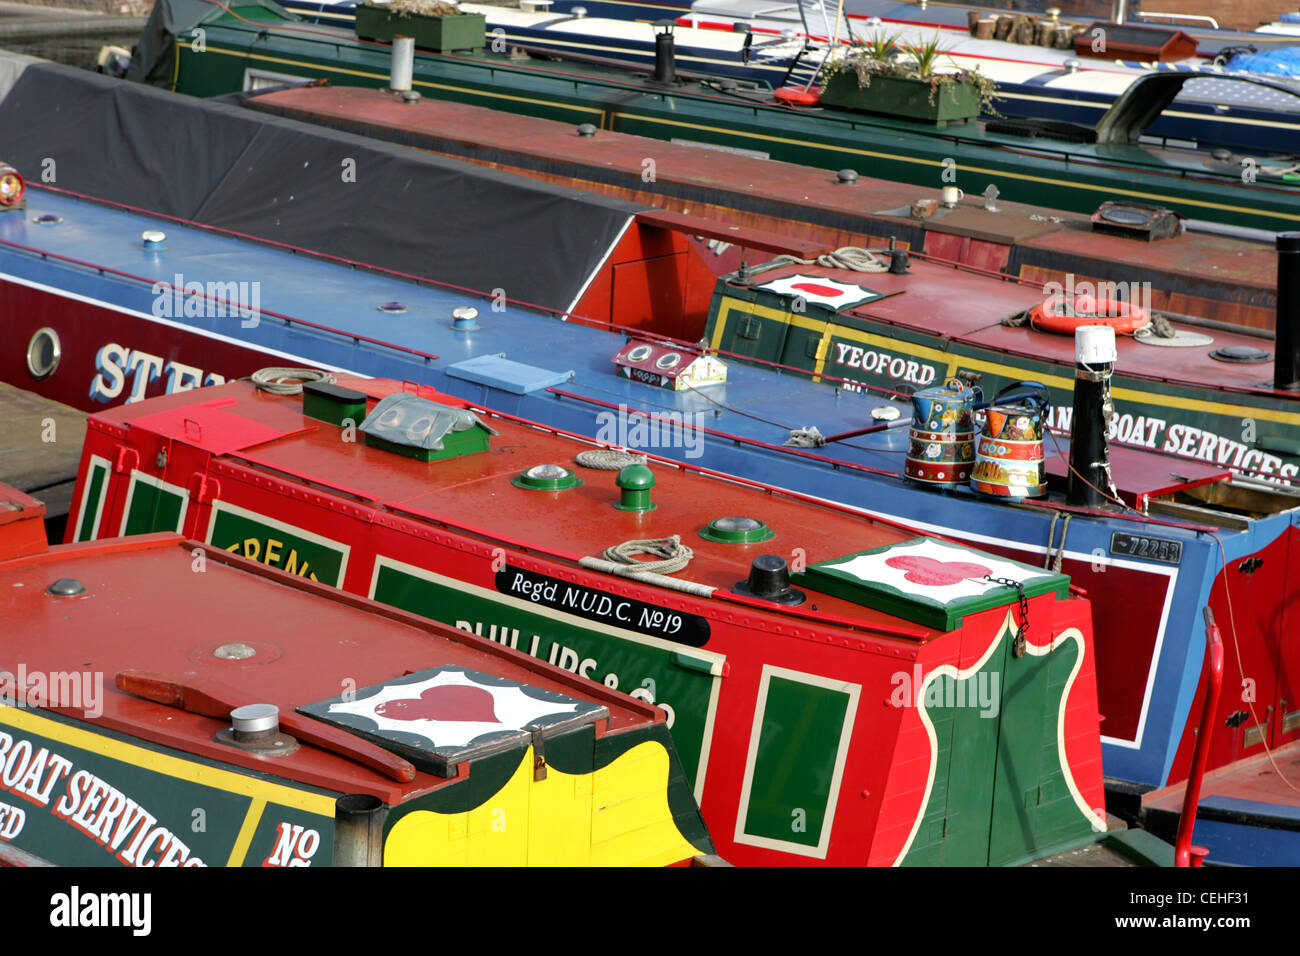 Selection of narrow boats moored up in birmingham city centre on the birmingham and worcester canal, feb 2012. - Stock Image